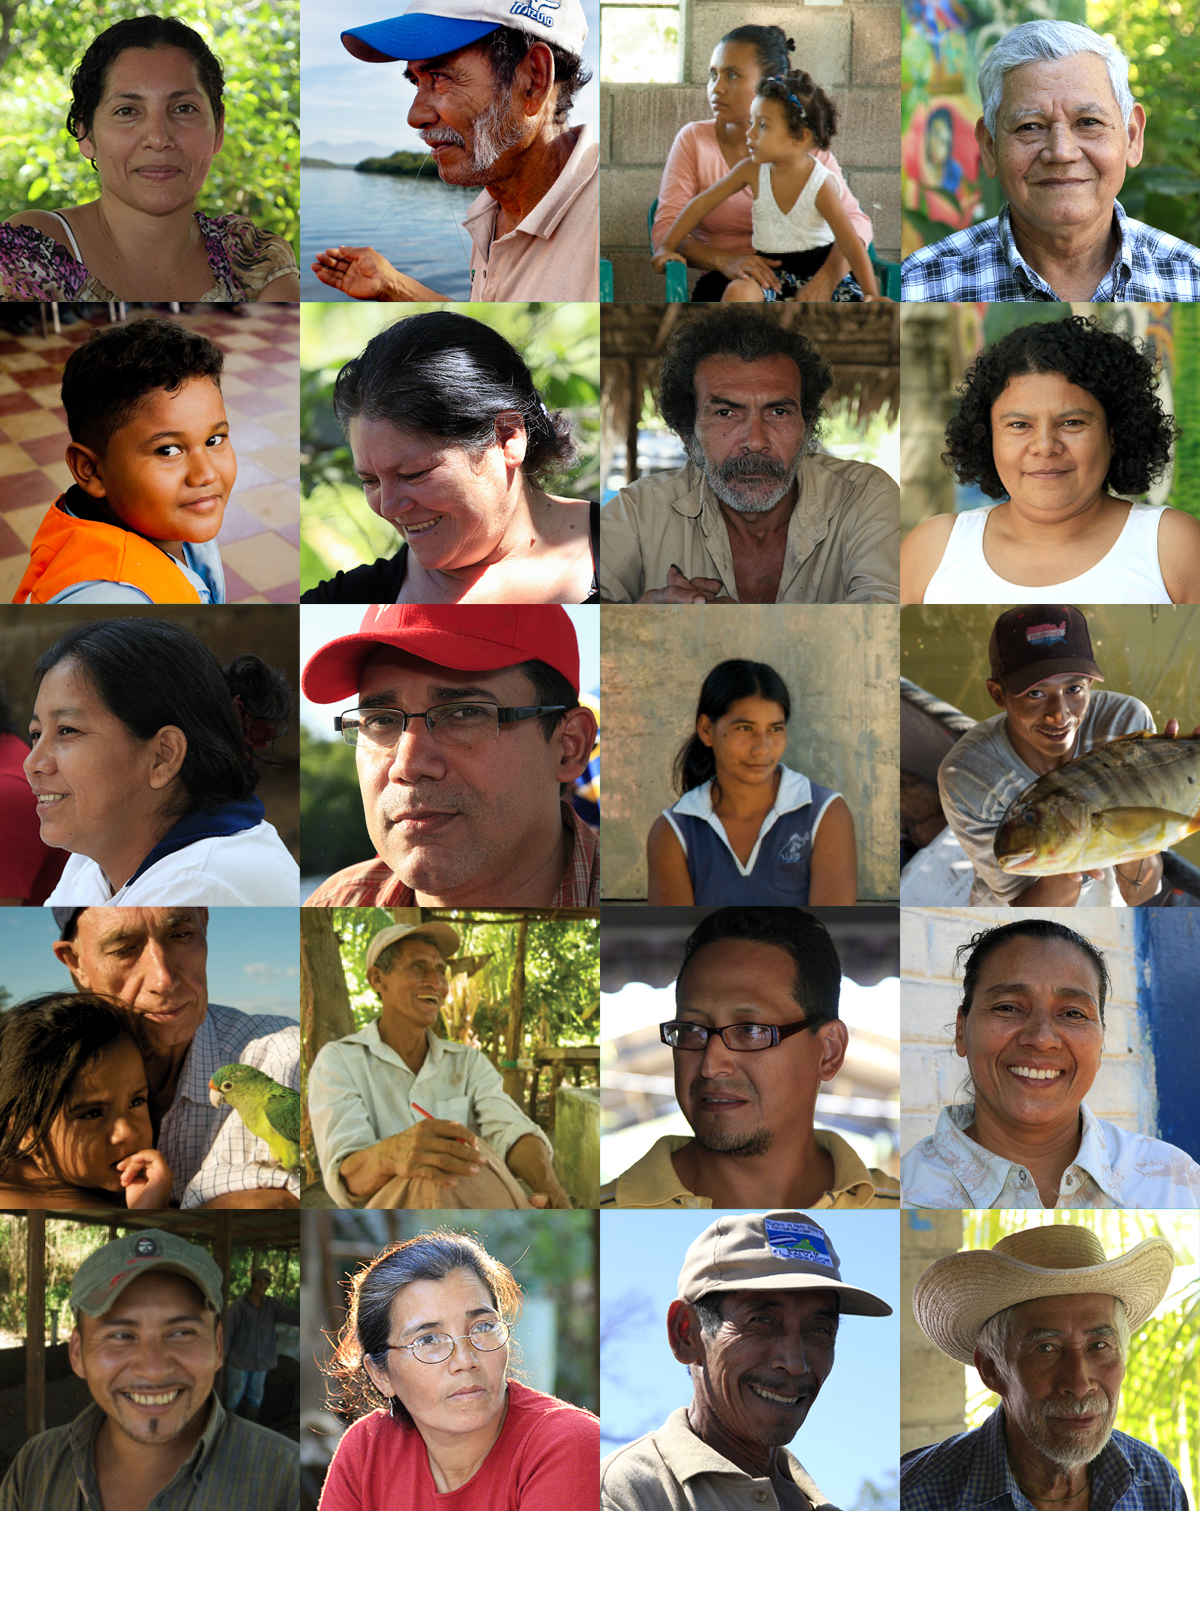 Rostros: Faces of Central America image